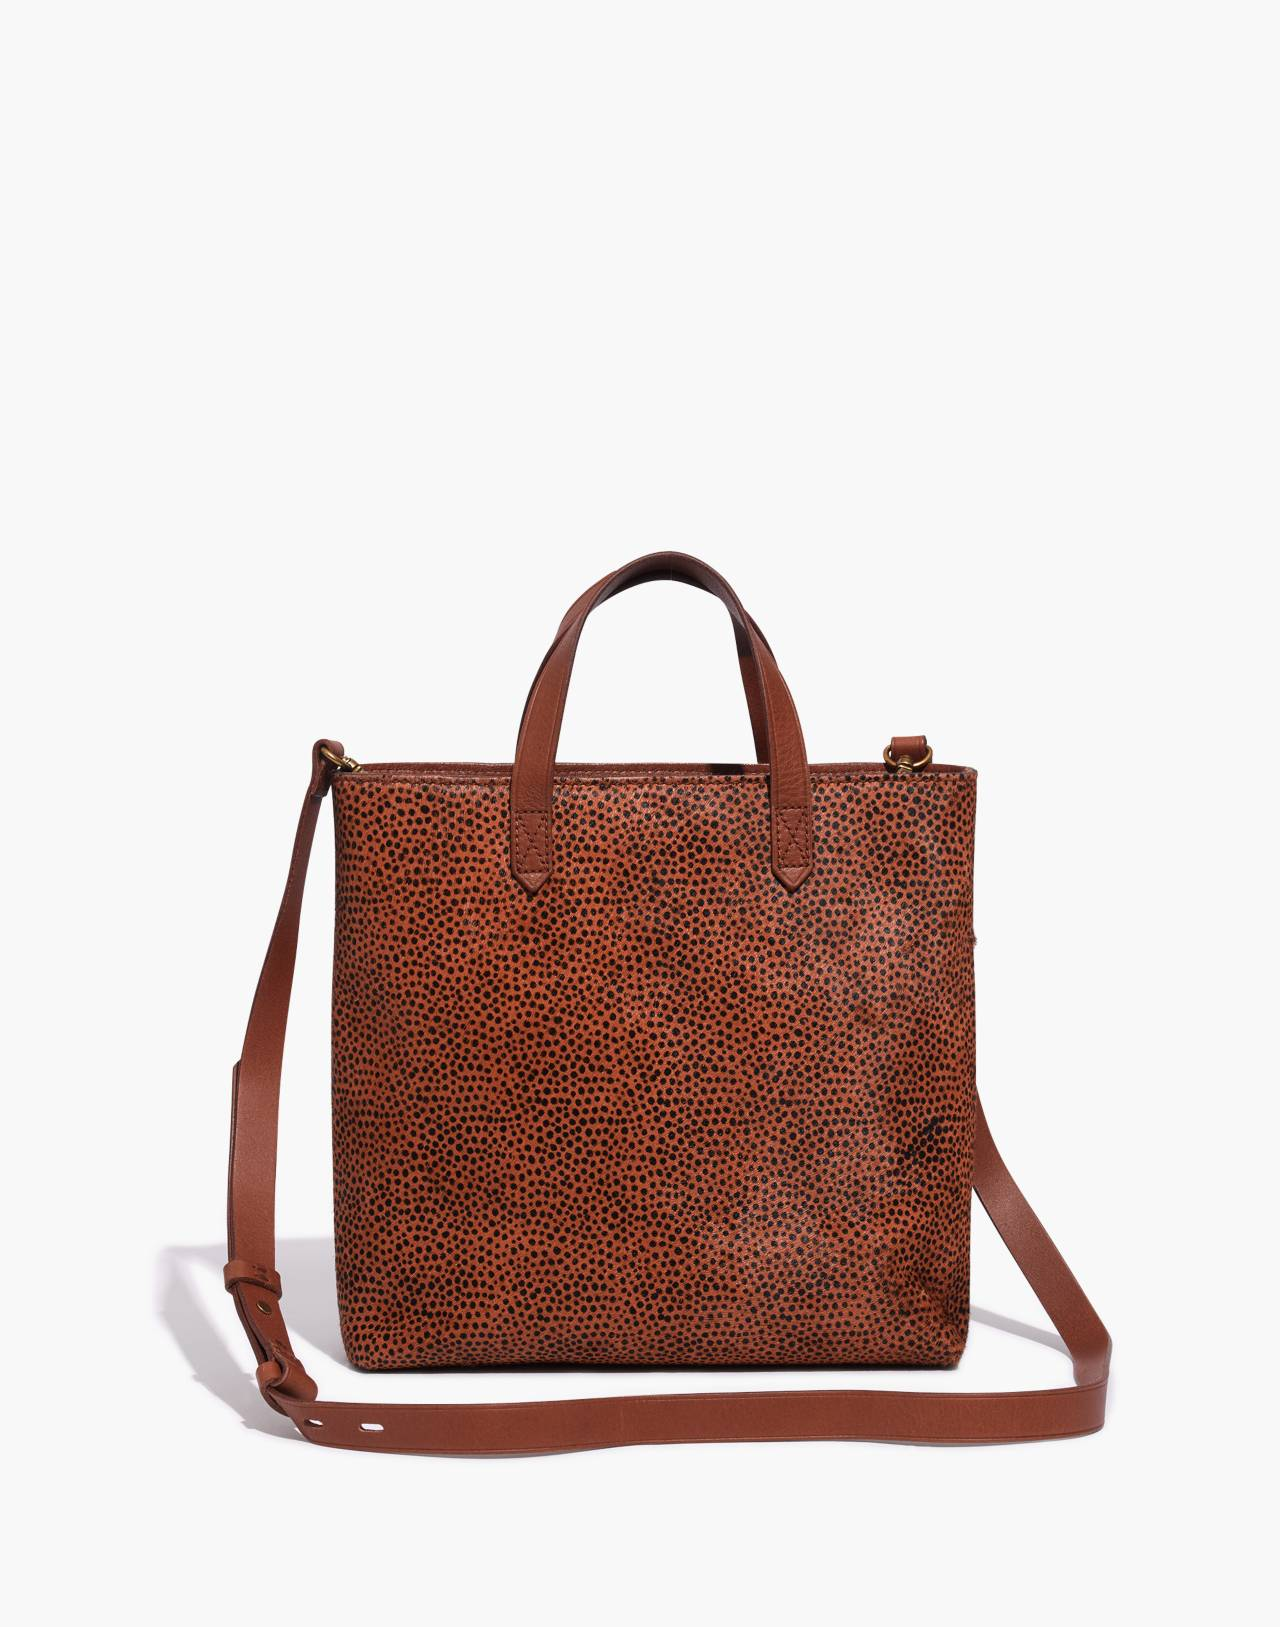 The Zip-Top Transport Crossbody in Spotted Calf Hair in bittersweet image 1